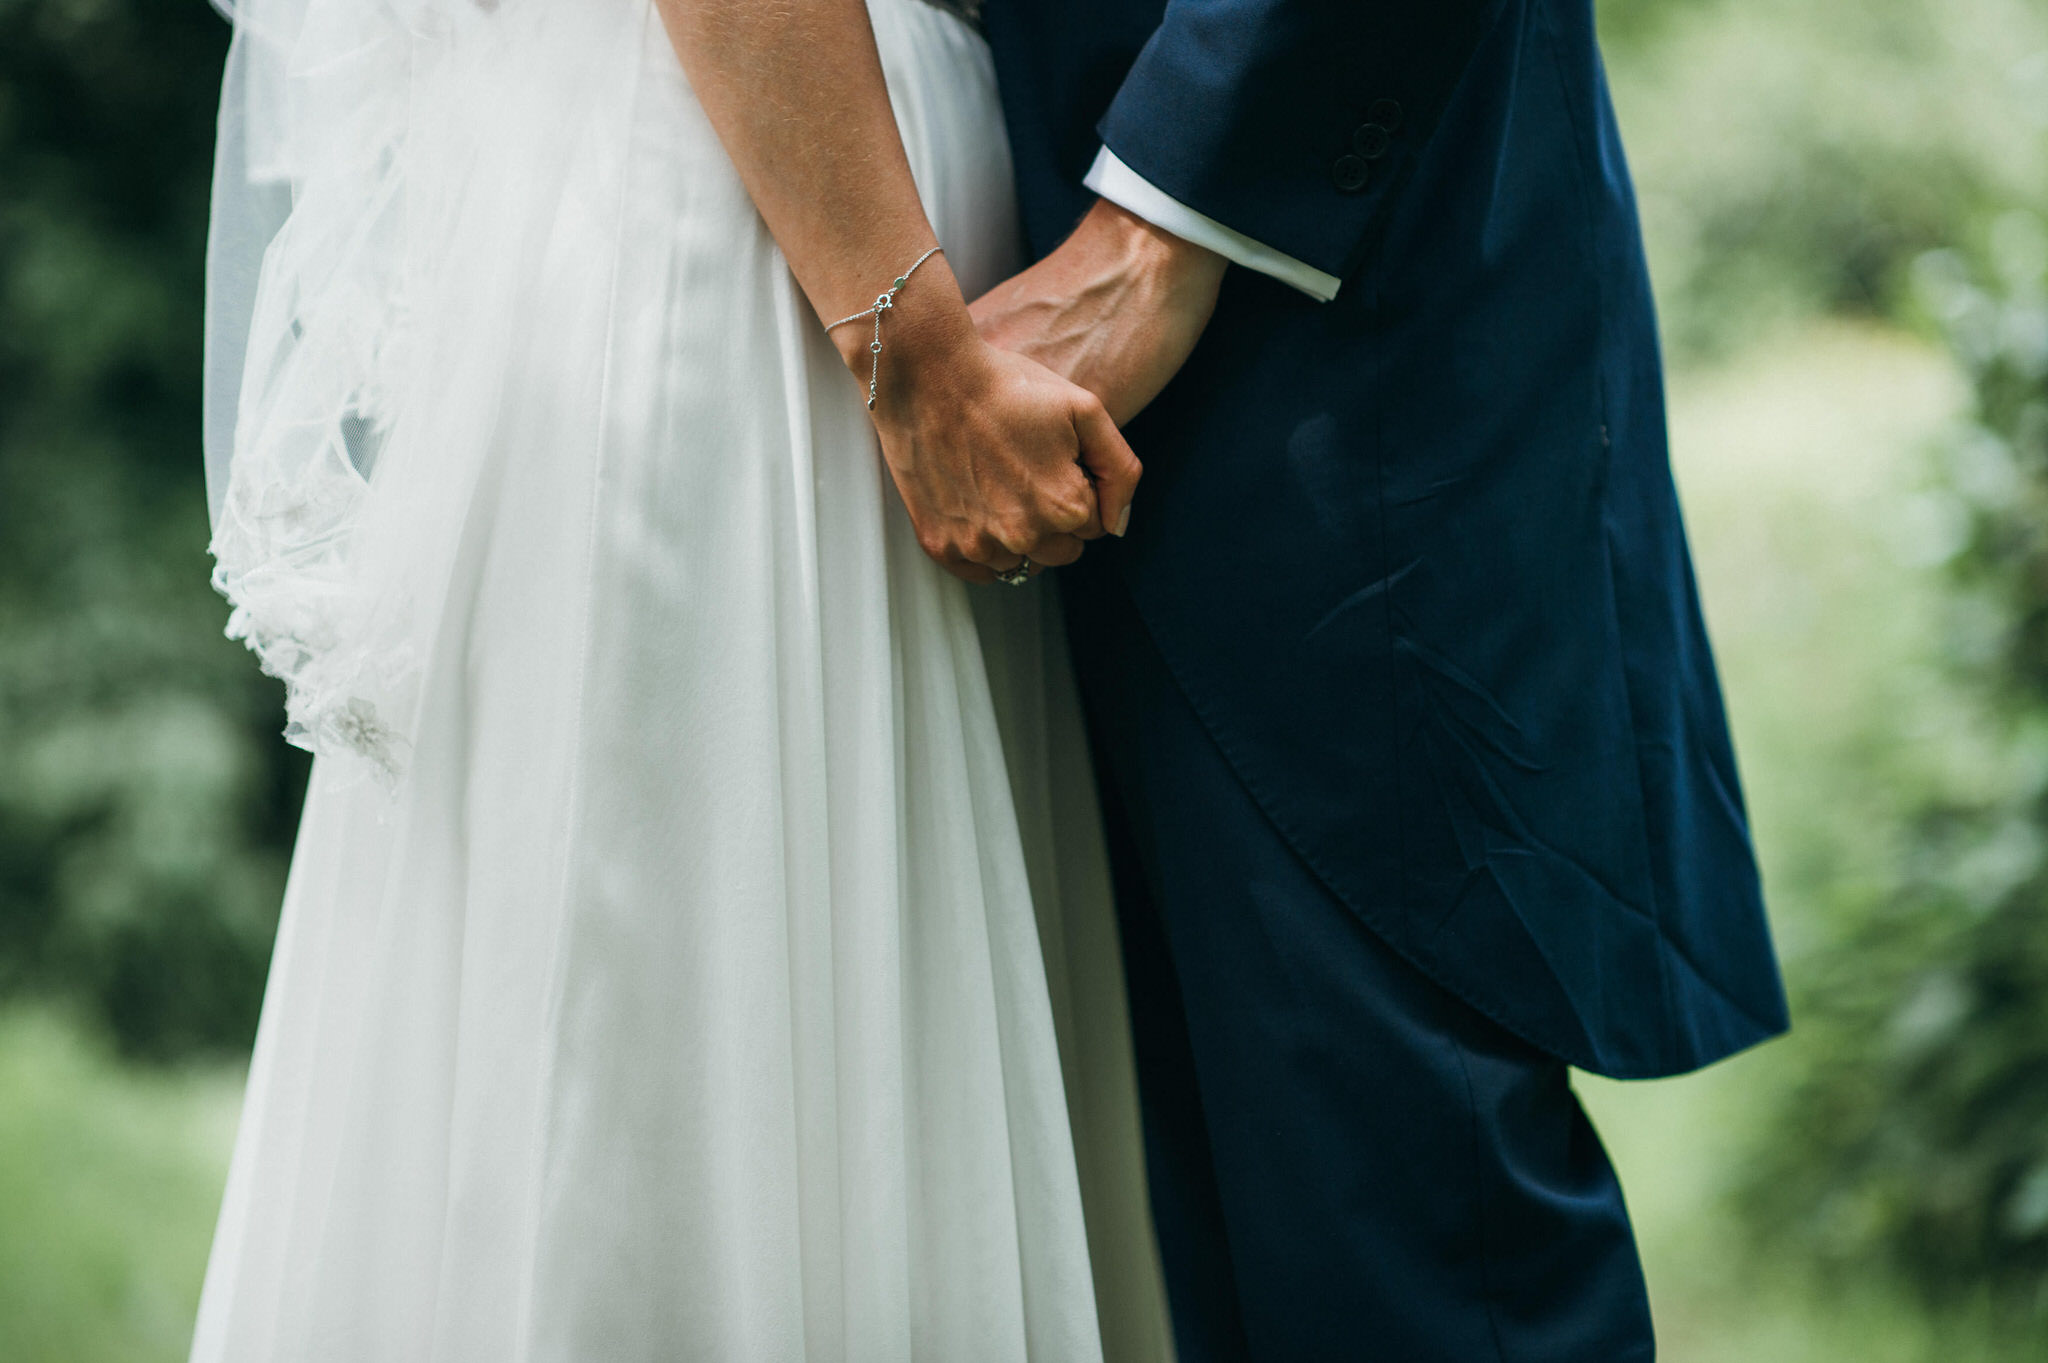 Bride and groom hand holding